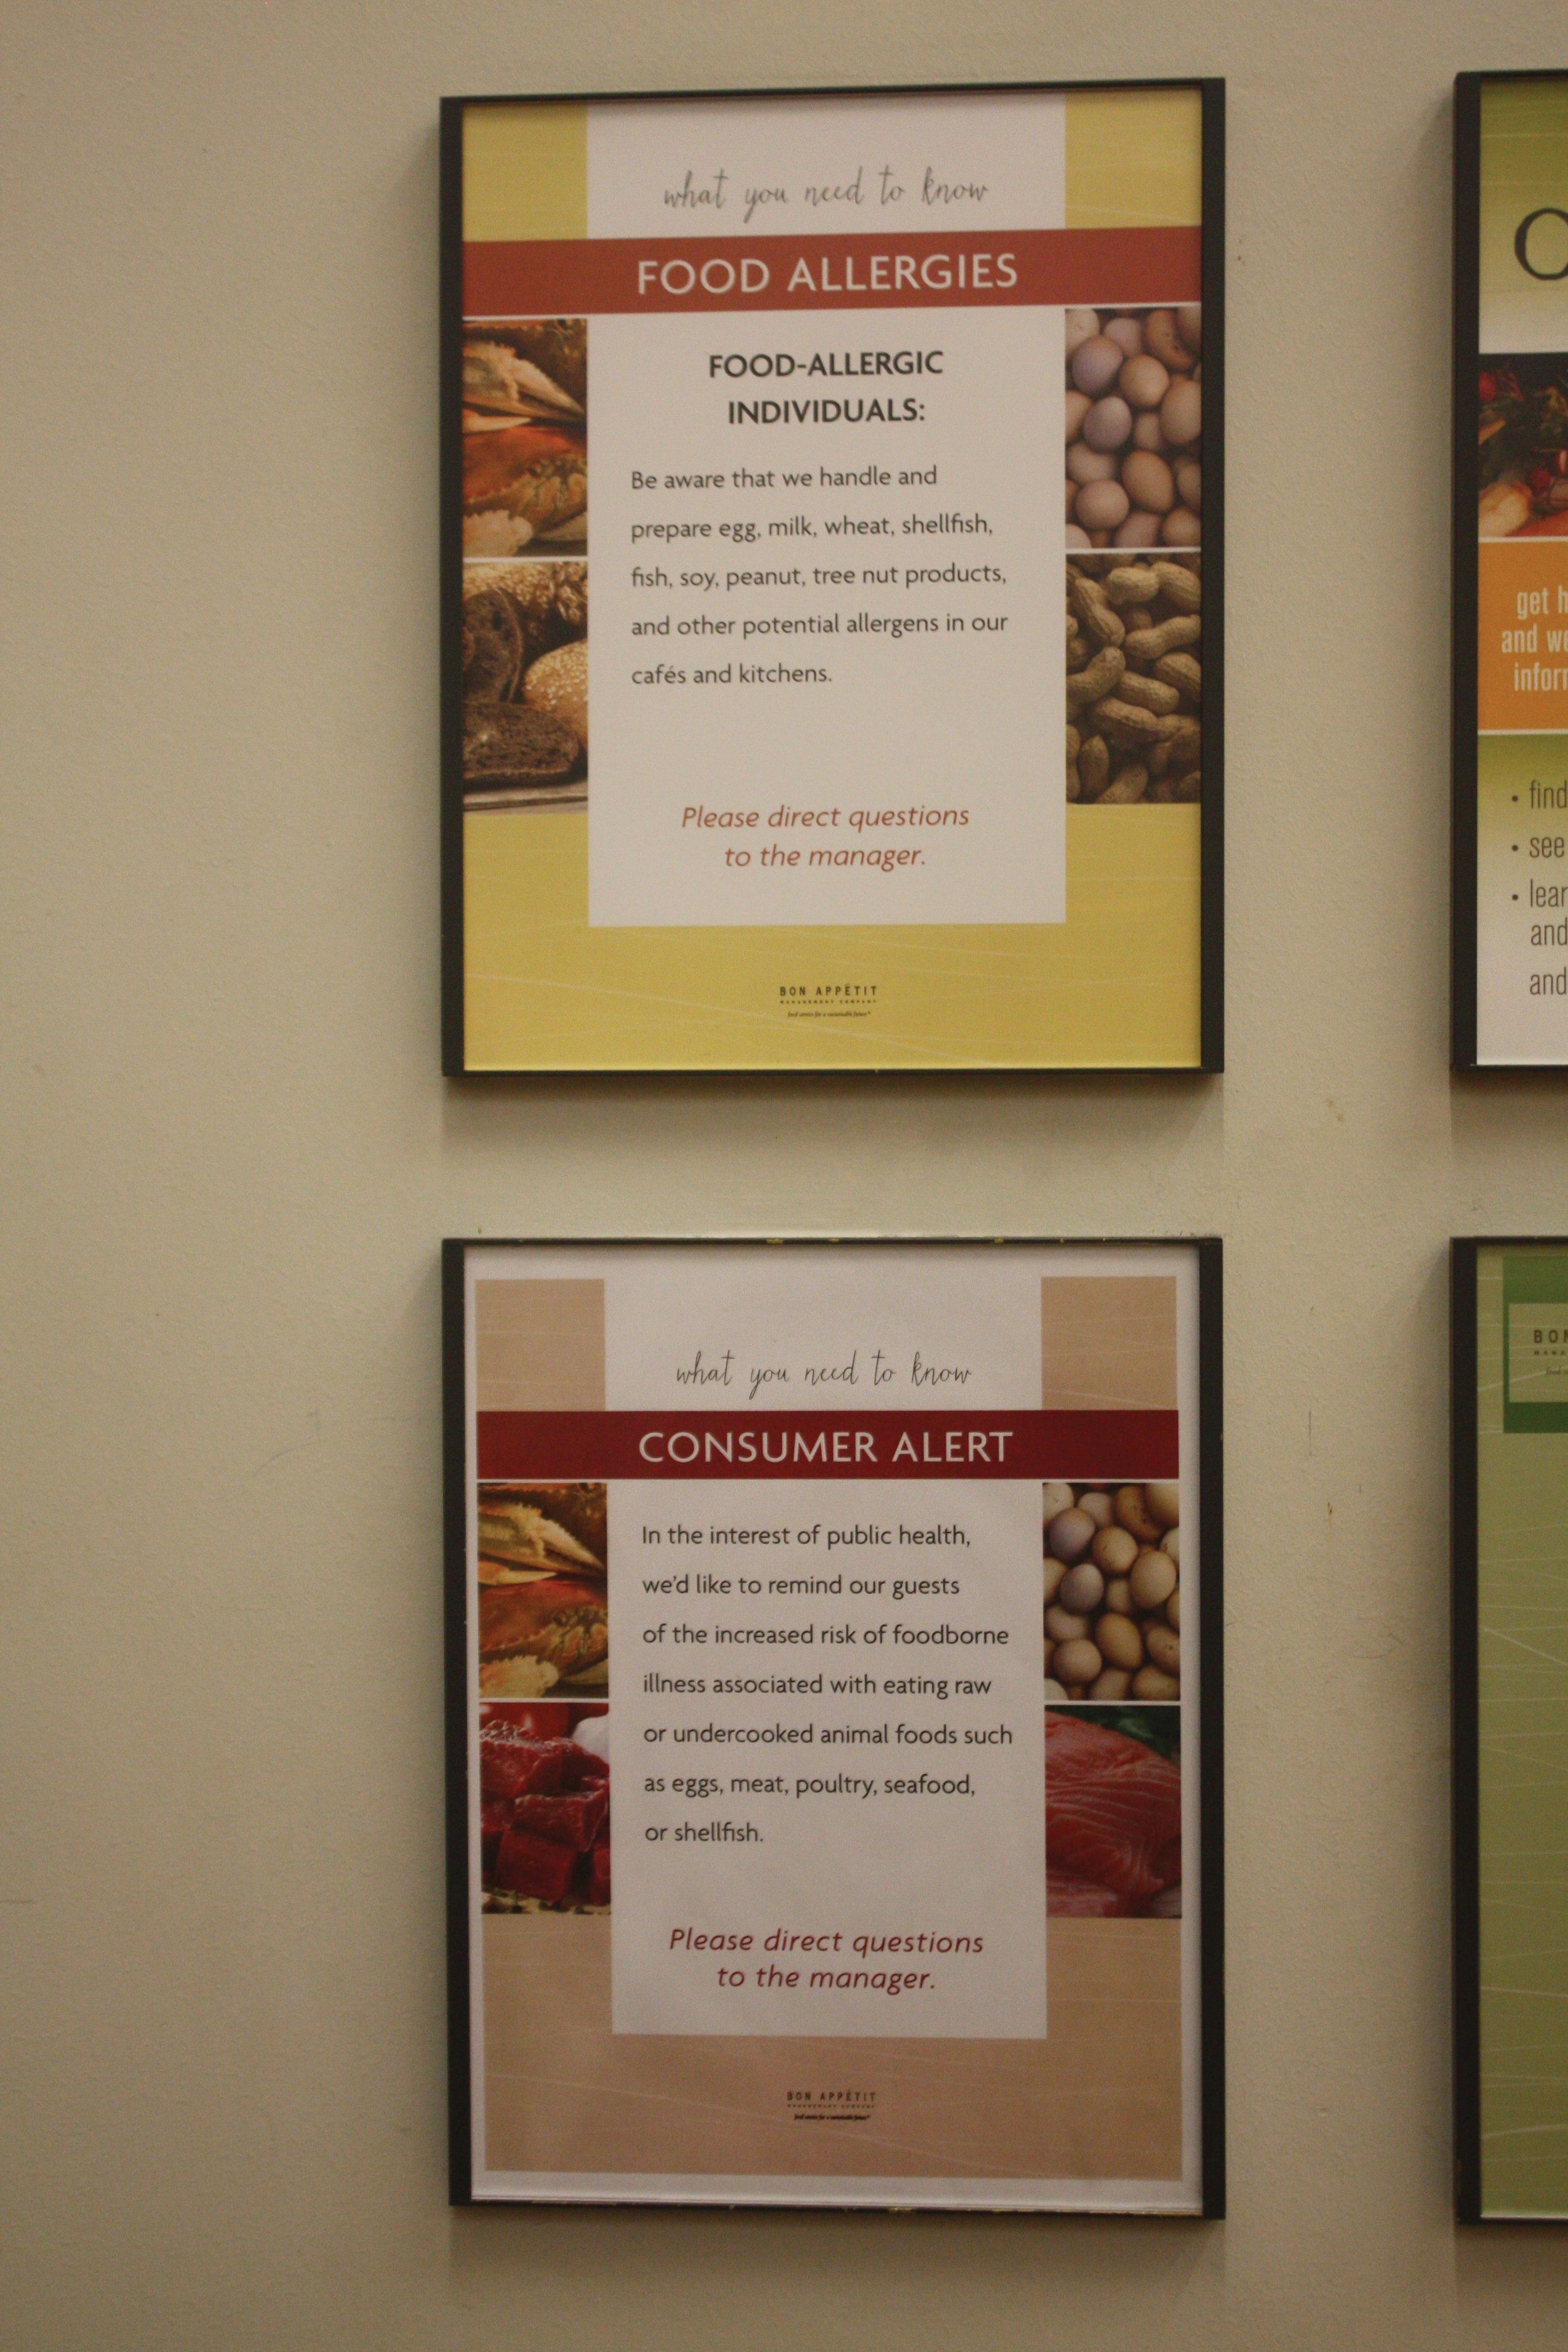 The CI labels potential allergens in foods as well as vegan, vegetarian, and gluten-free options.